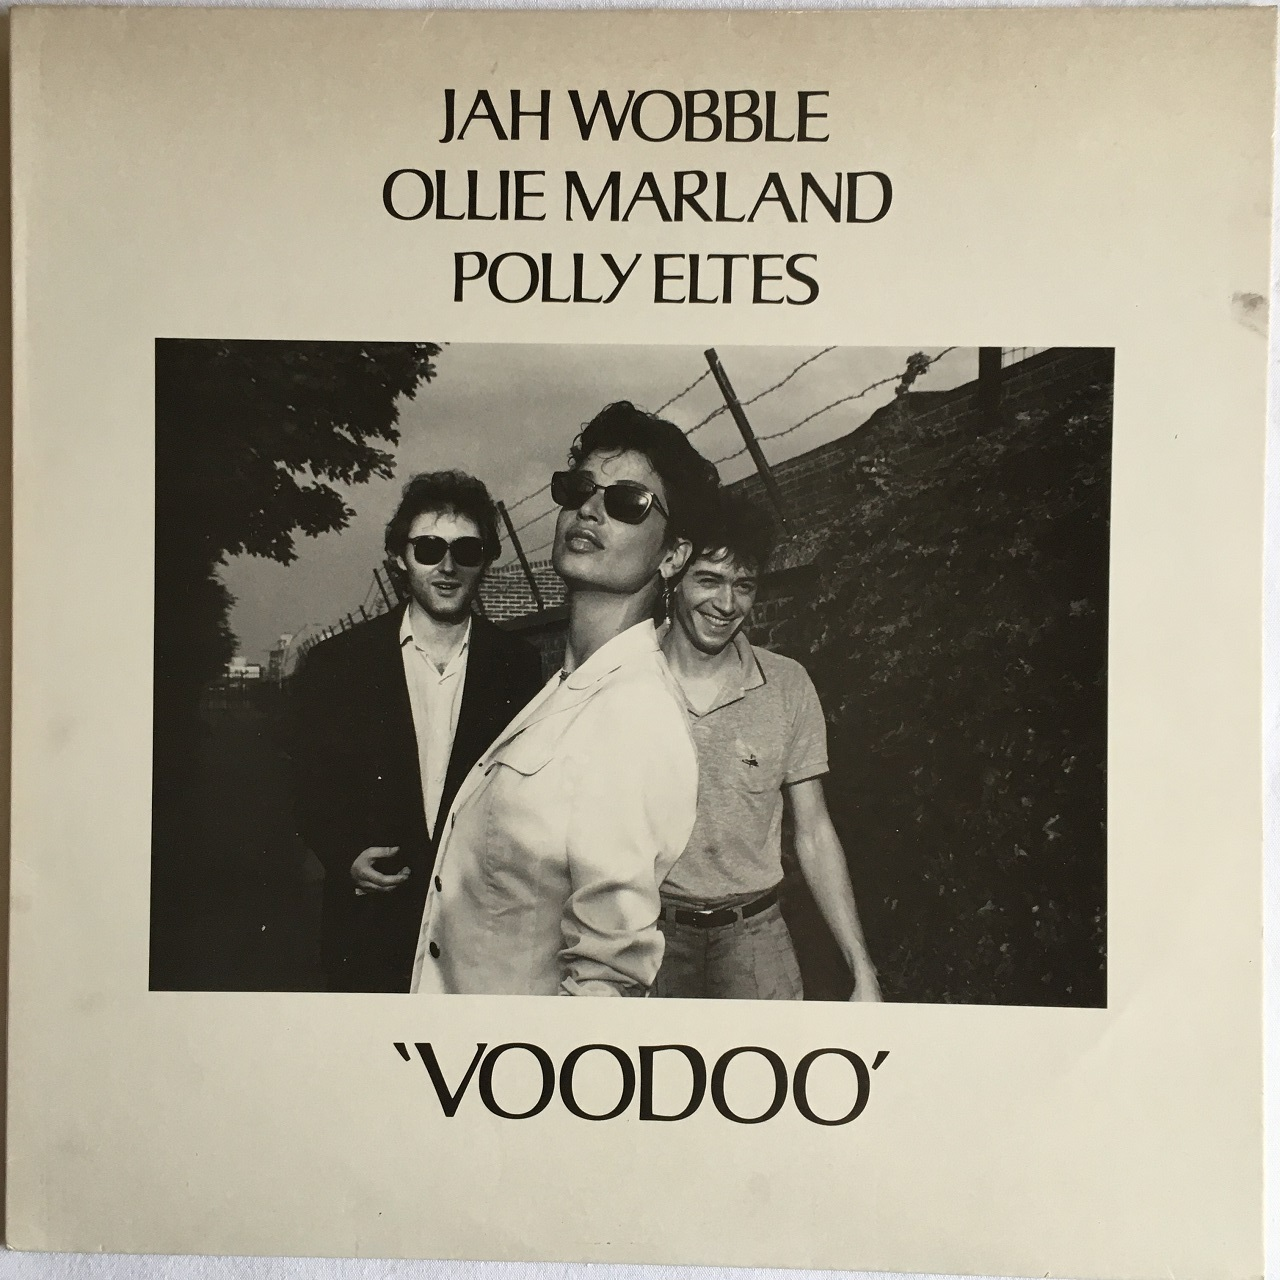 【12inch・仏盤】Jah Wobble, Ollie Marland, Polly Eletes  / VOODOO